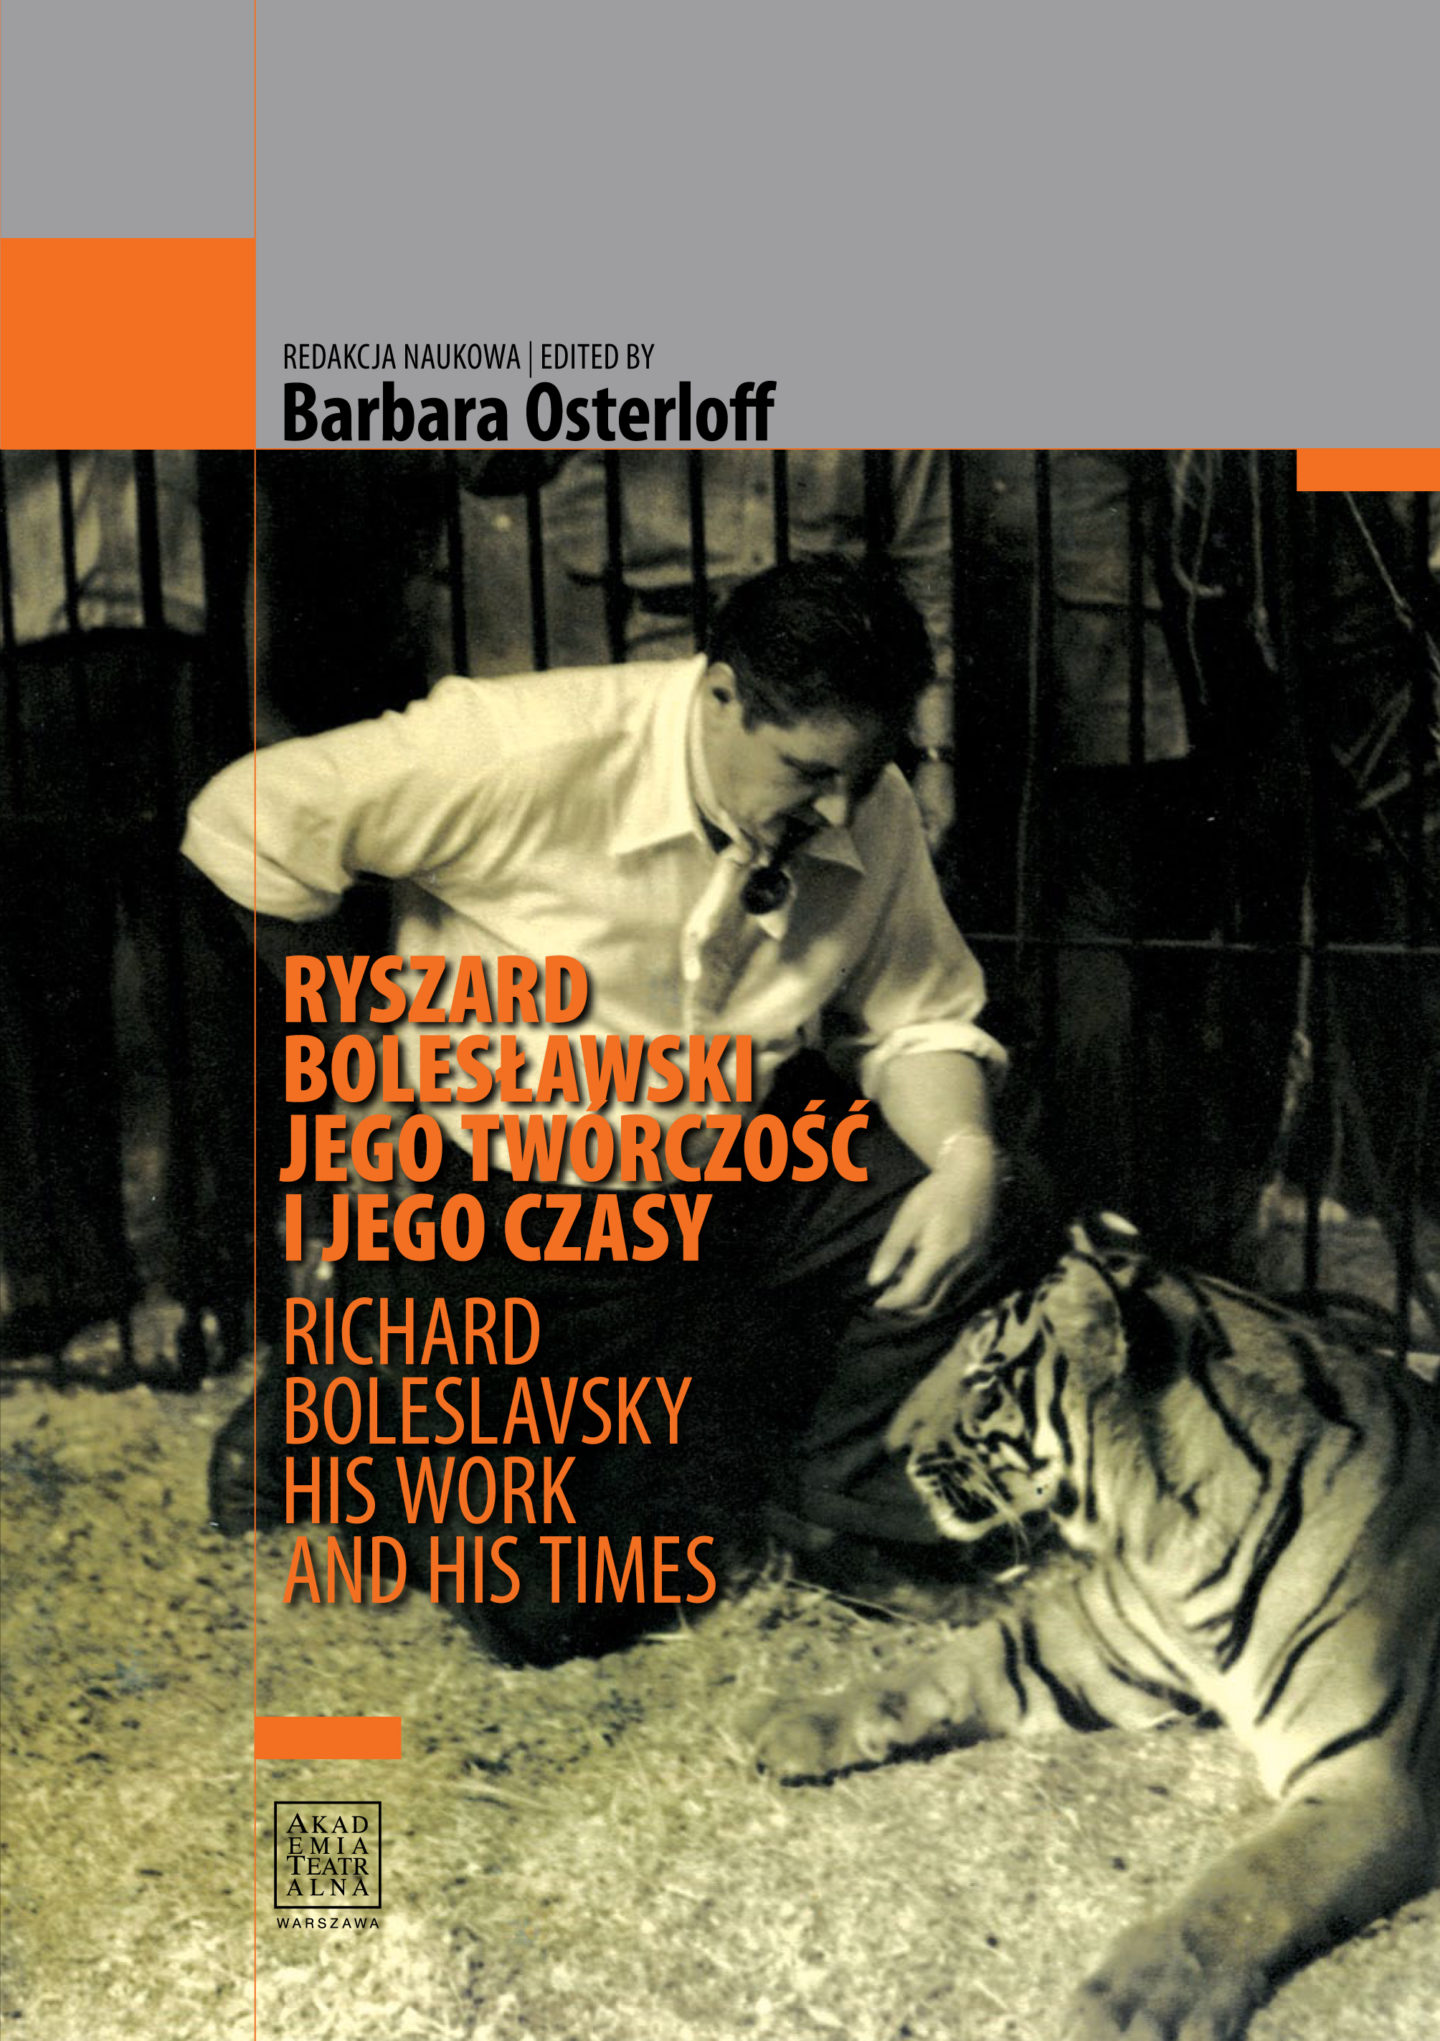 RYSZARD BOLESŁAWSKI. JEGO TWÓRCZOŚĆ I&nbsp;JEGO CZASY // RICHARD BOLESLAVSKY HIS WORK AND HIS TIMES <br> REDAKCJA NAUKOWA /EDITED BY/ BARBARA OSTERLOFF